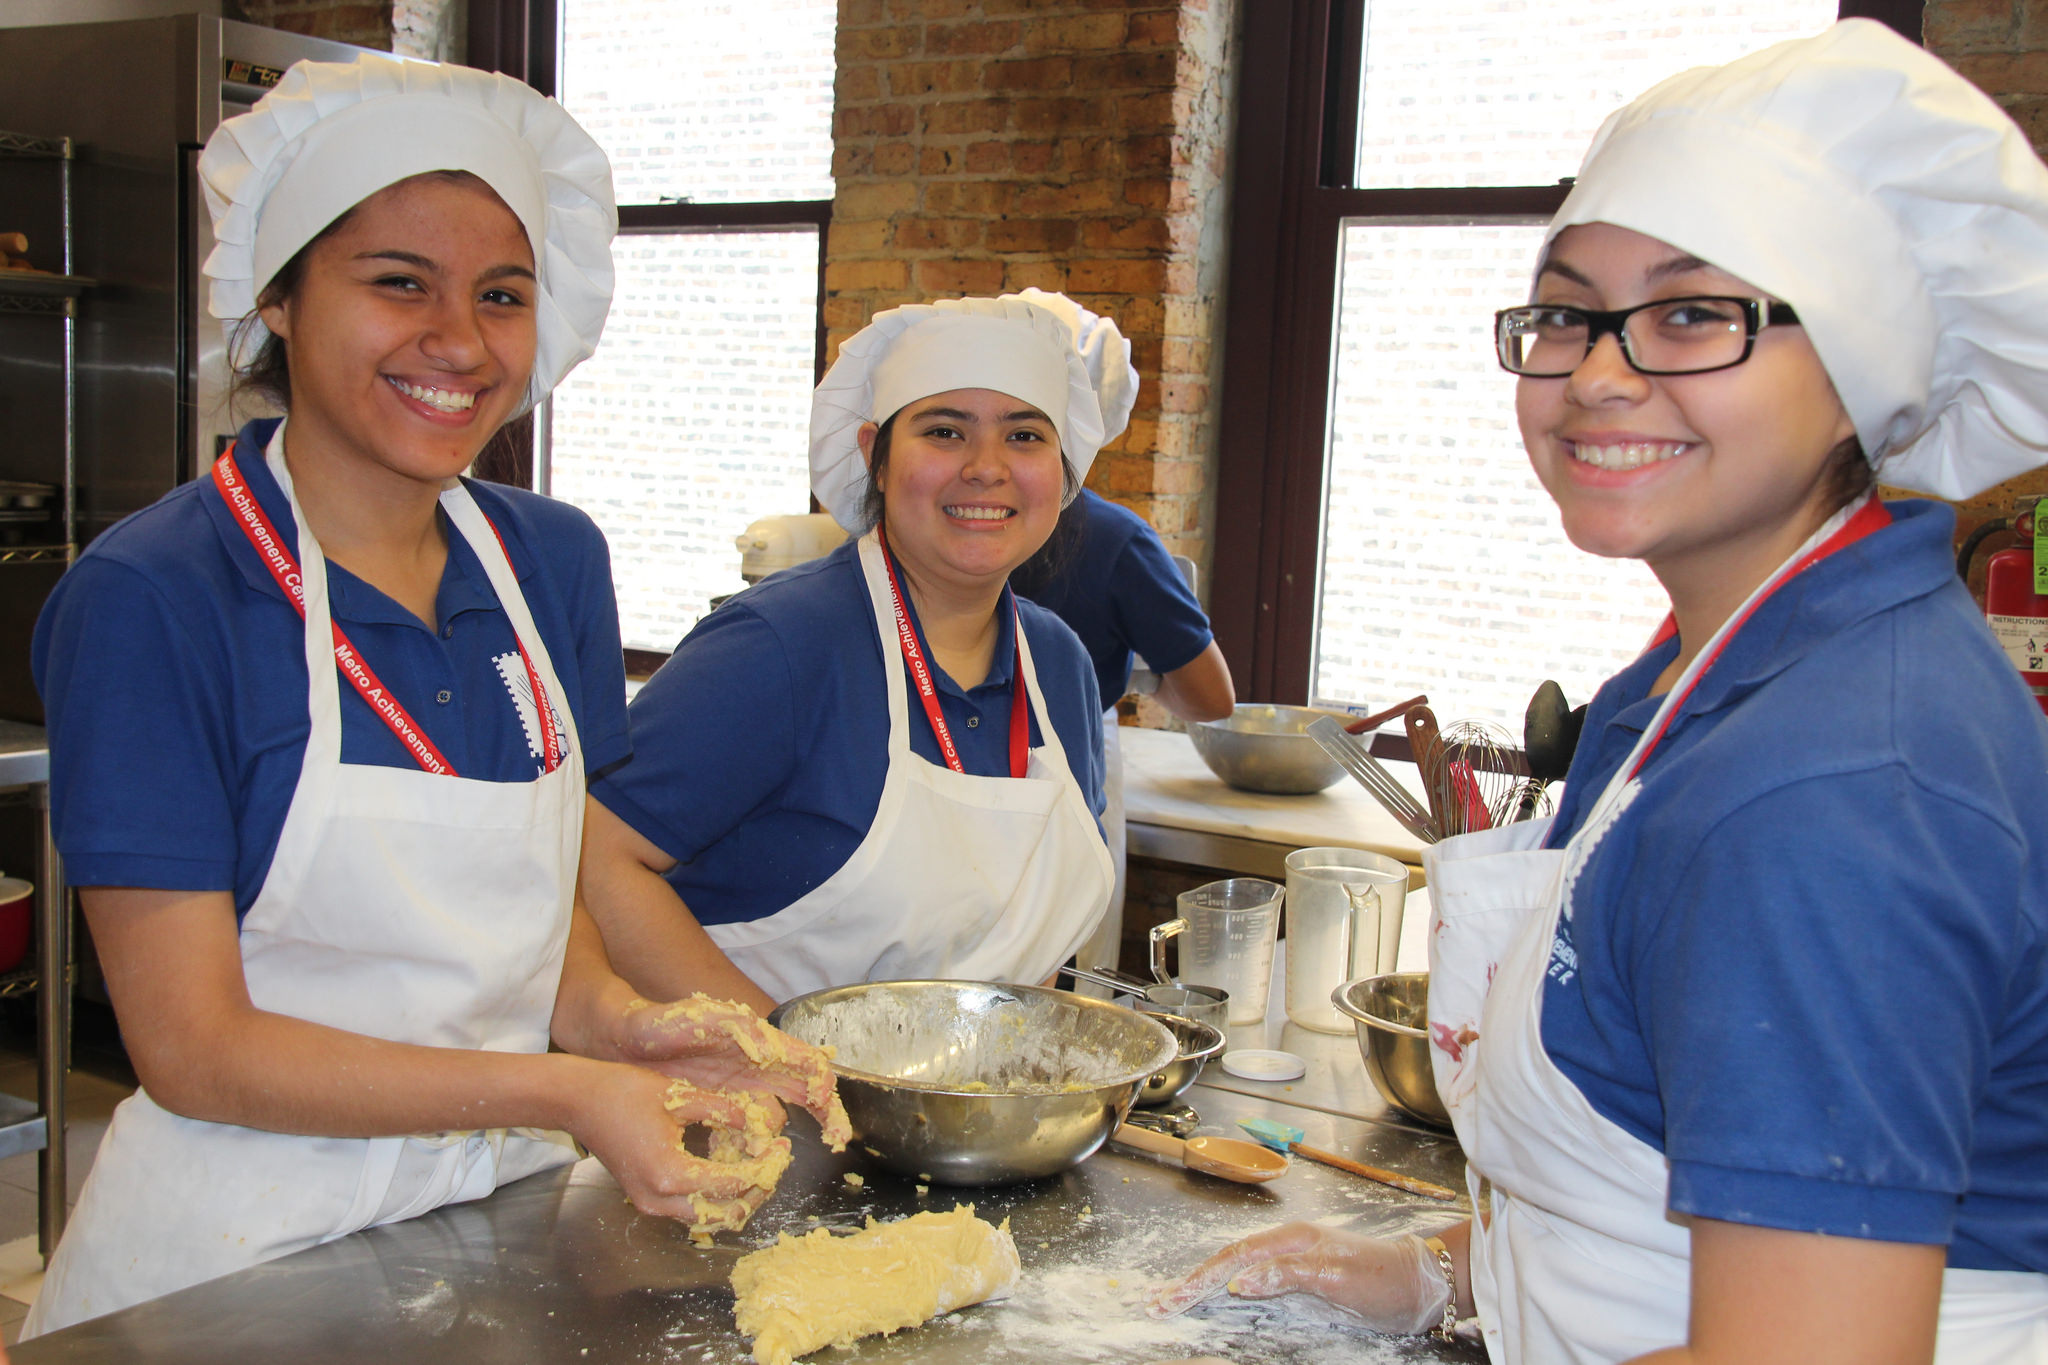 Midtown Educational Foundation offers separate high school summer internship programs for boys and girls.